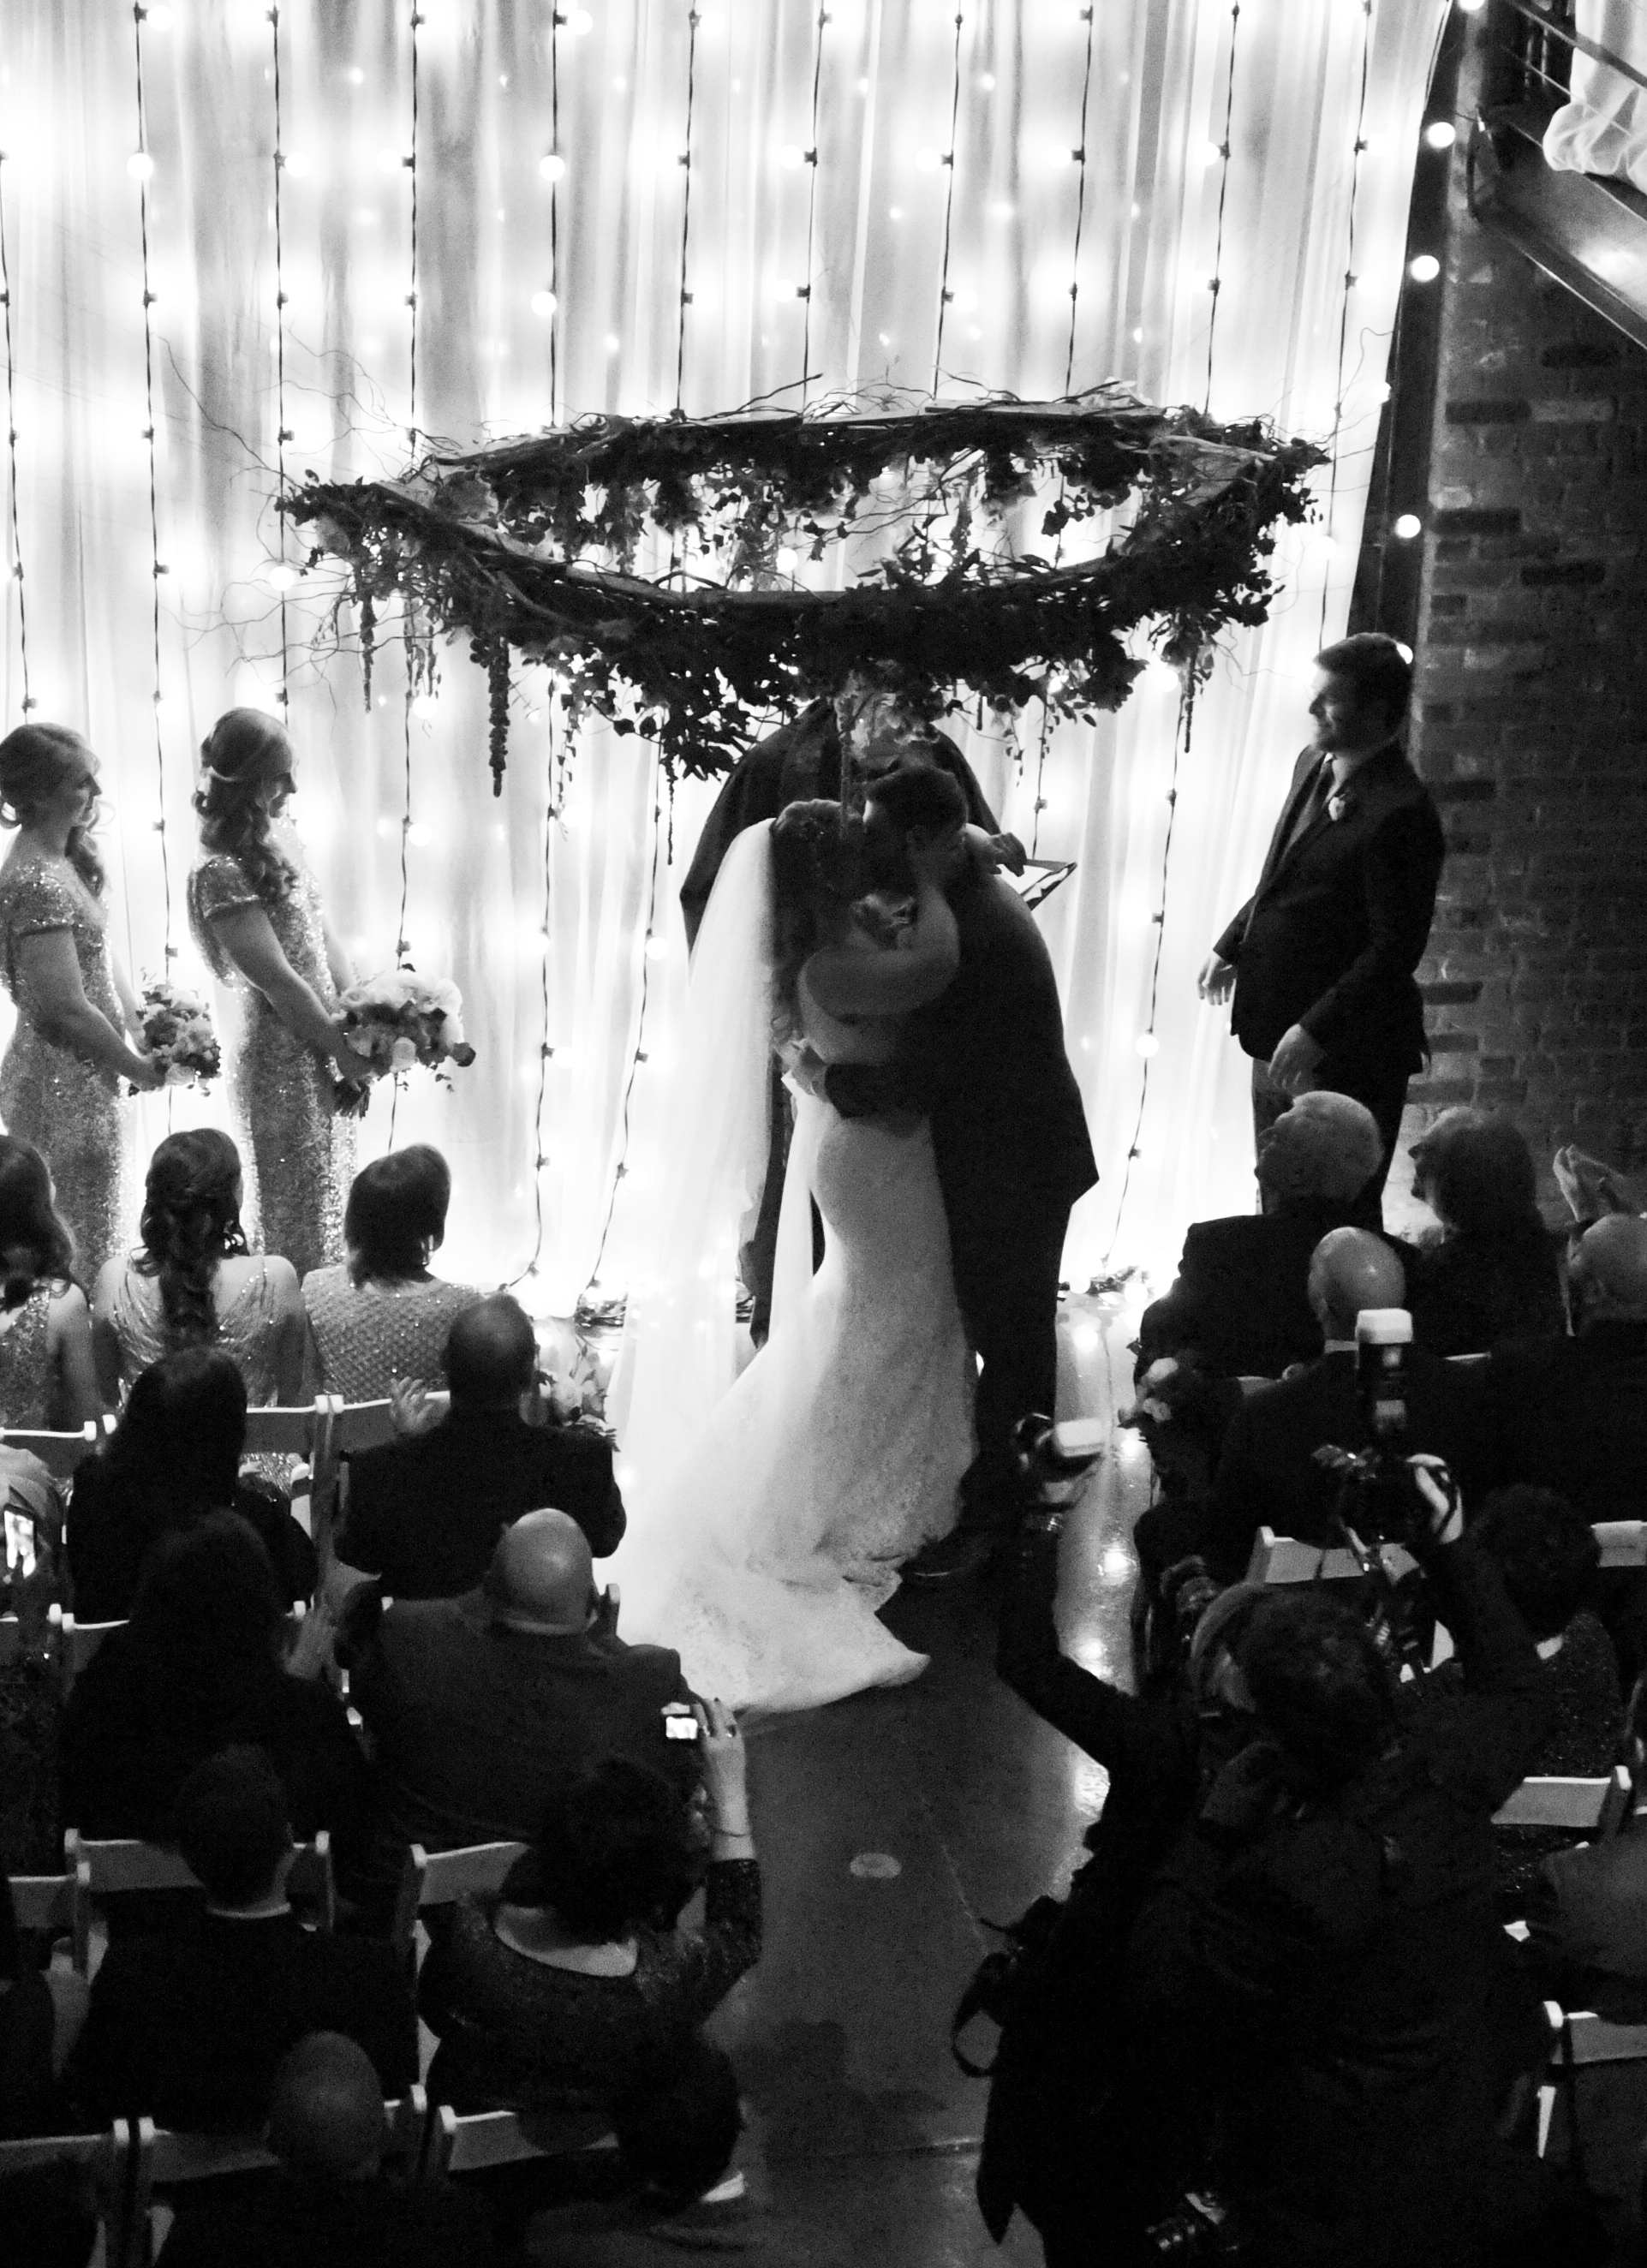 The happiest moment of the ceremony